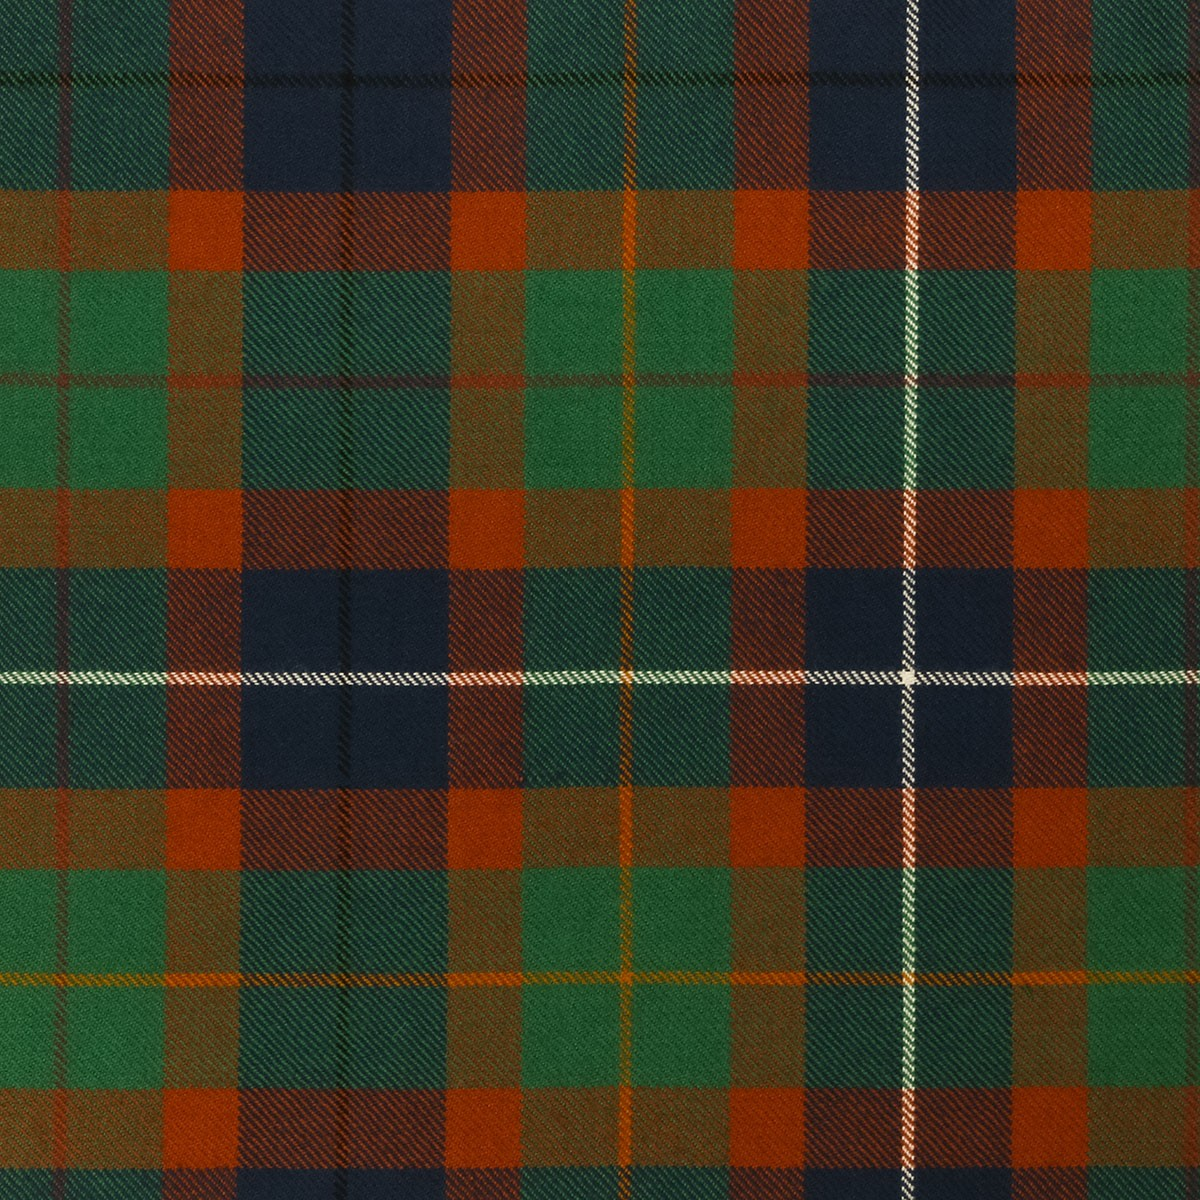 Amnesty International Tartan Fabric